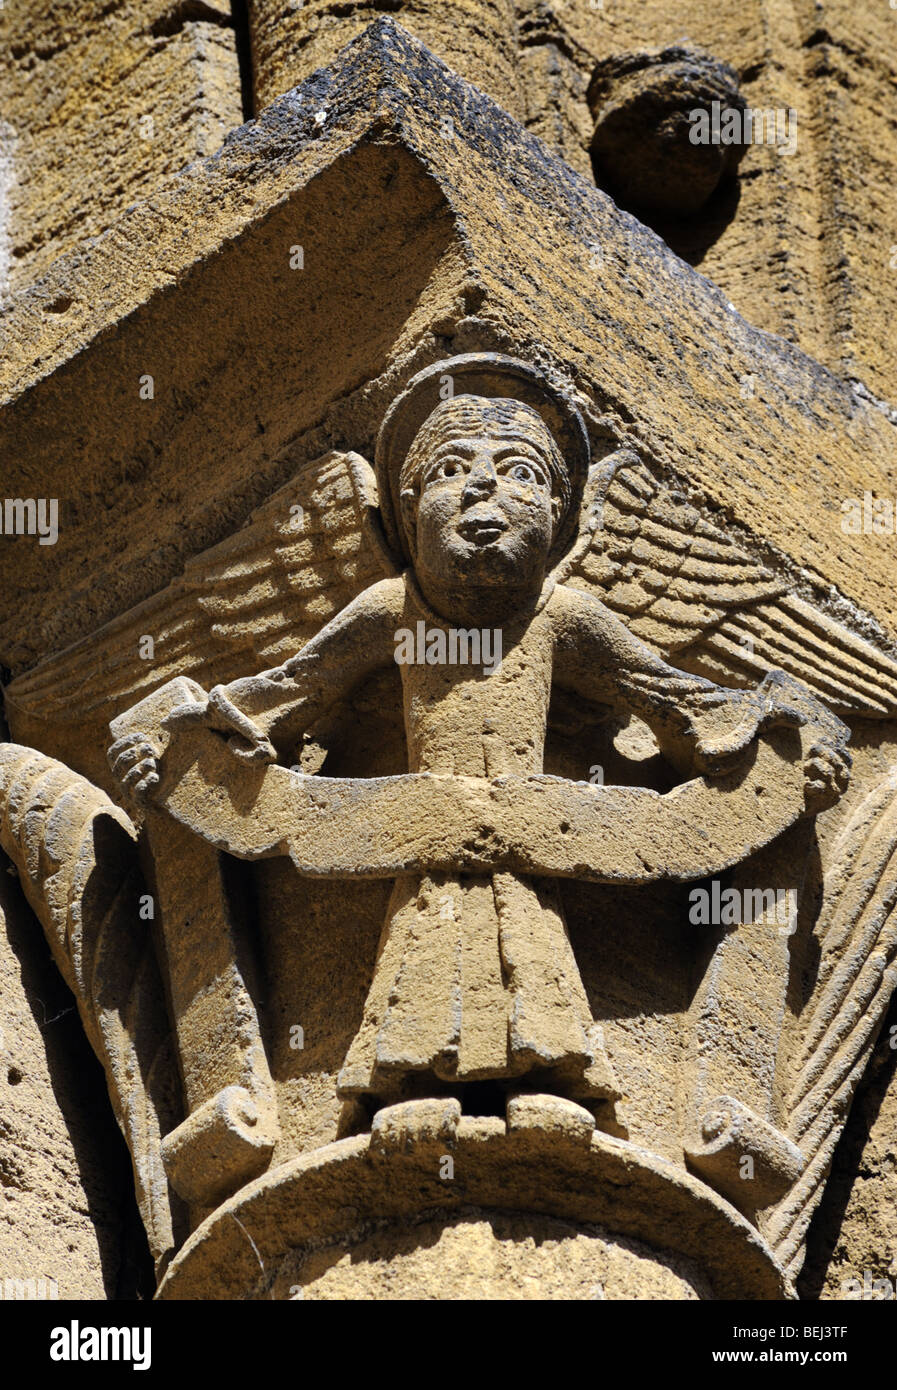 Carvings on the Church in the historic hillside village of Conques, France - Stock Image